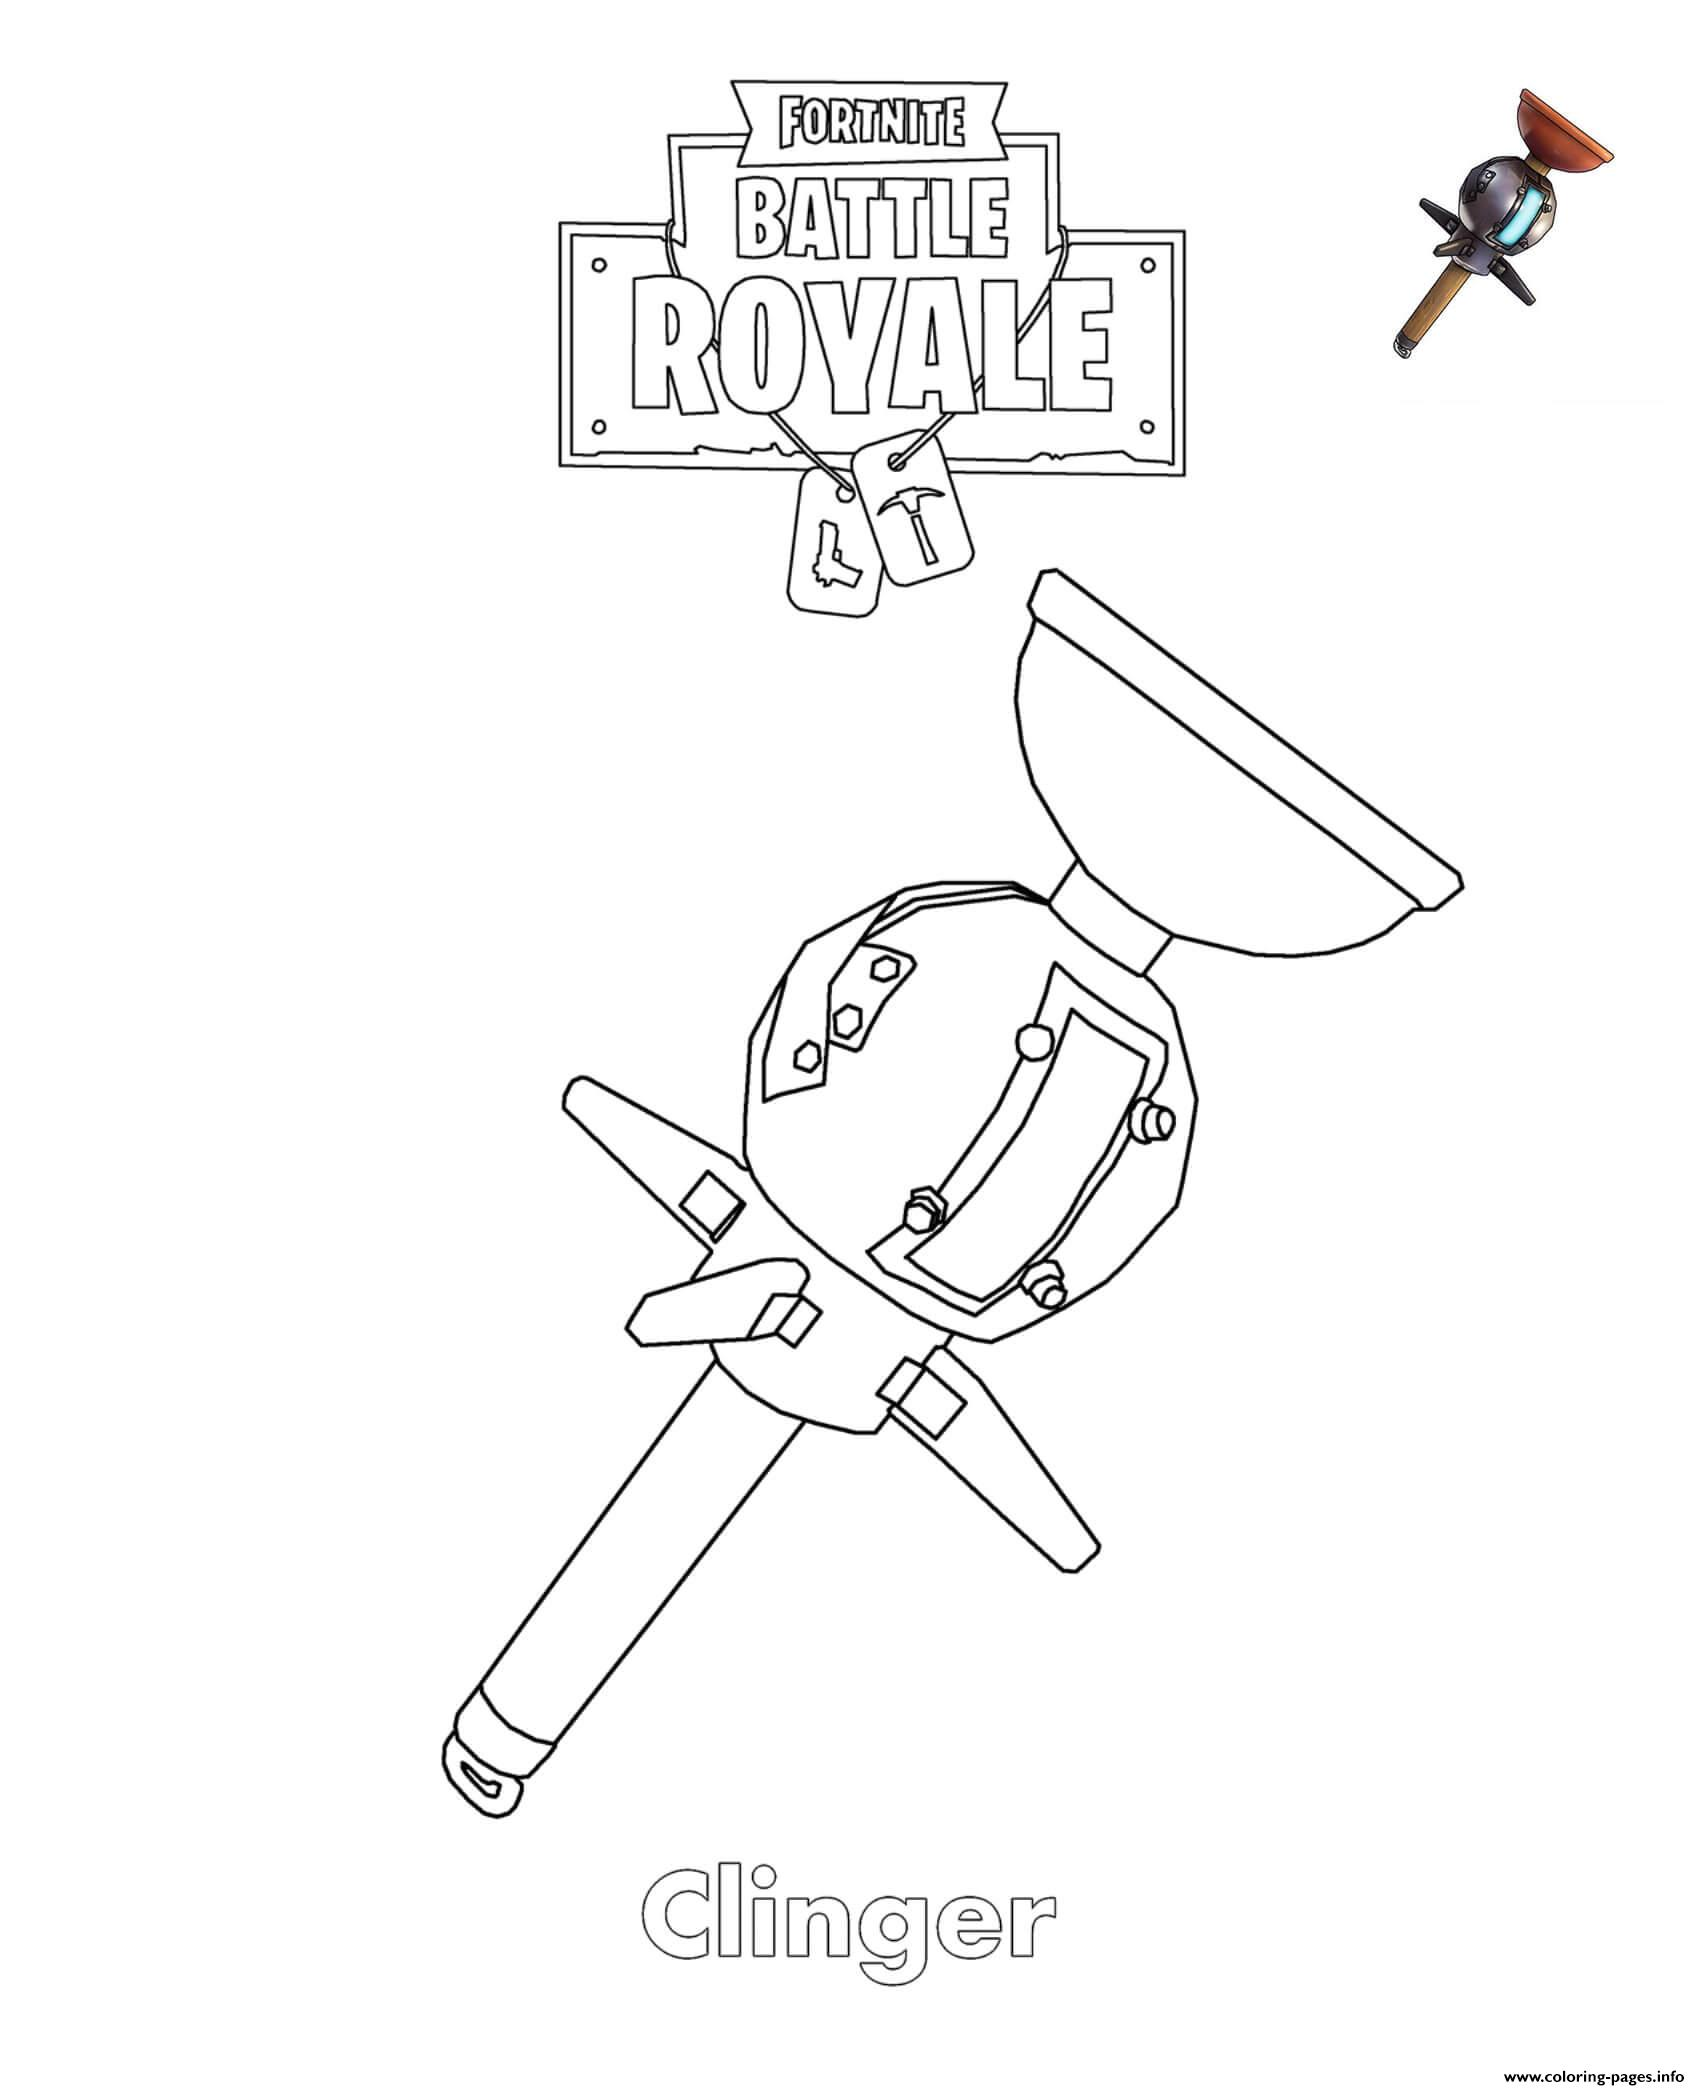 Clinger Fortnite coloring pages